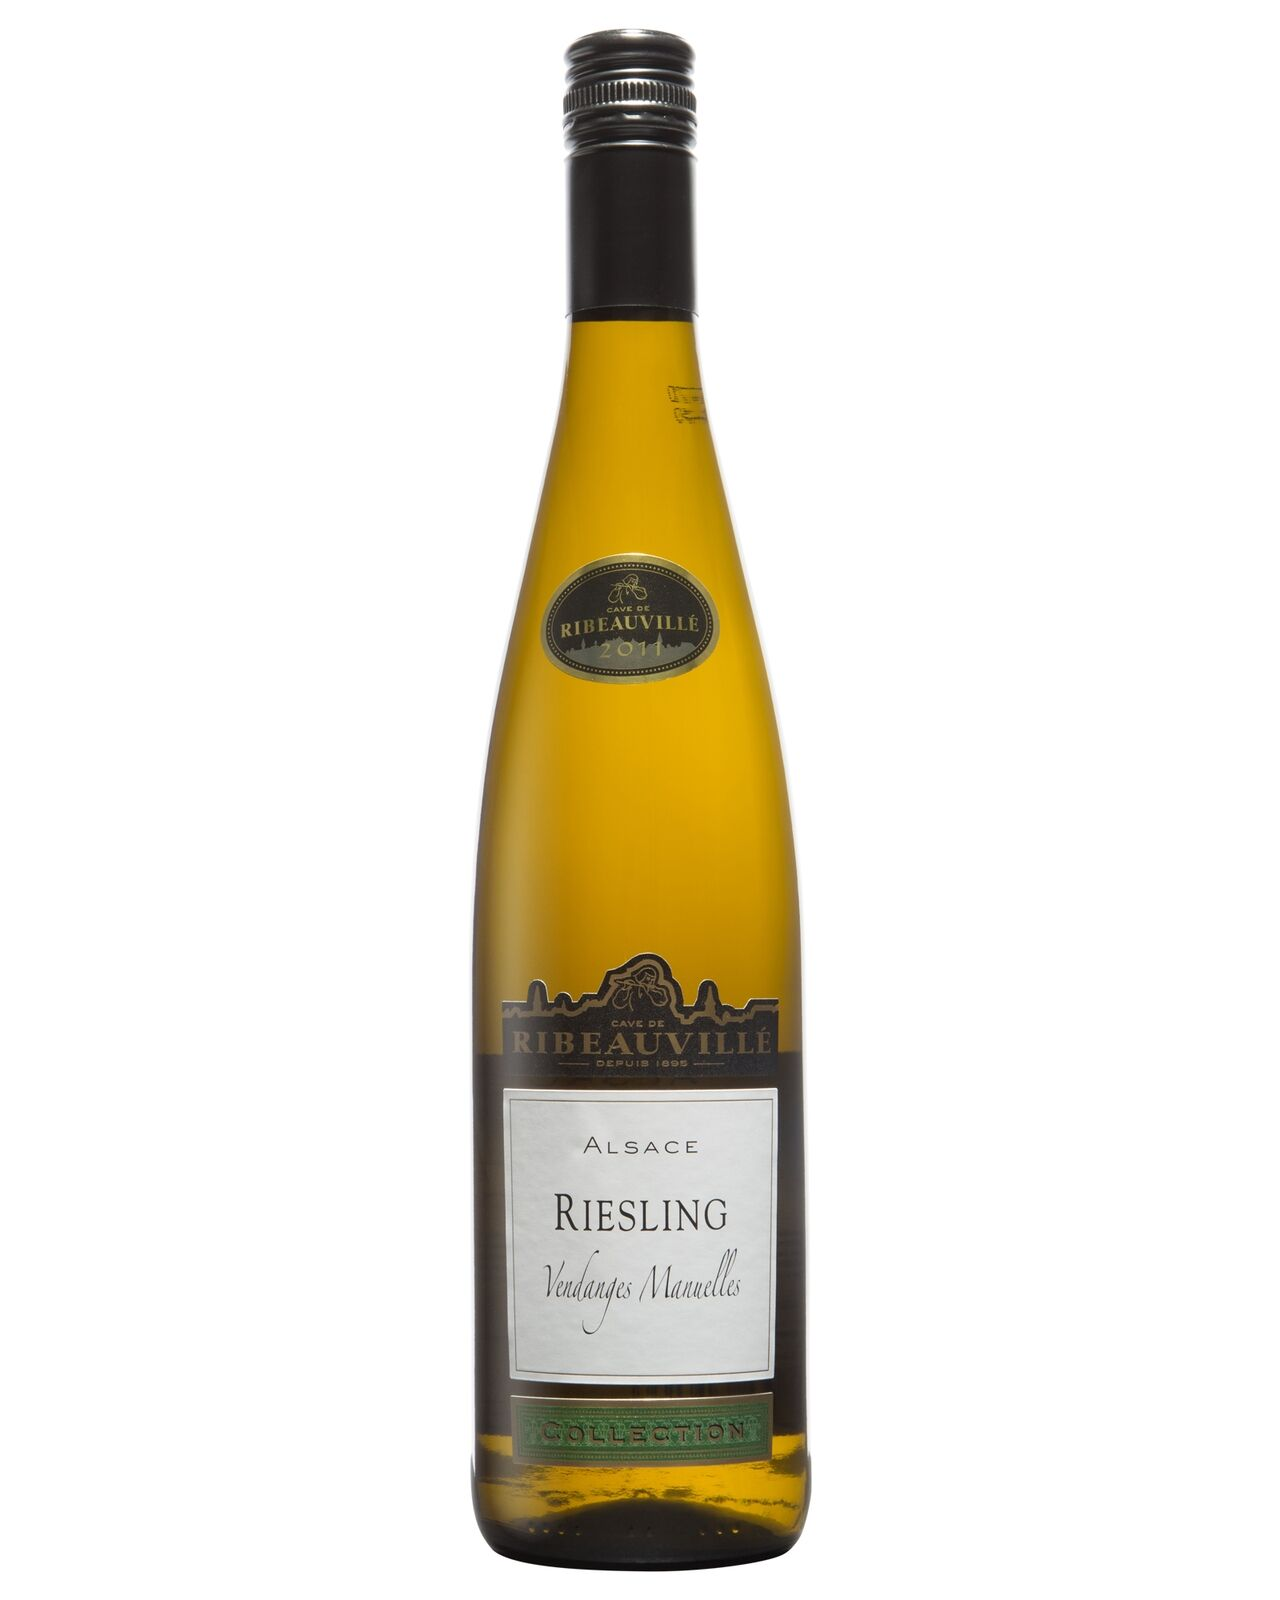 Cave De Ribeauville Riesling 2011 bottle Dry White Wine 750mL Alsace